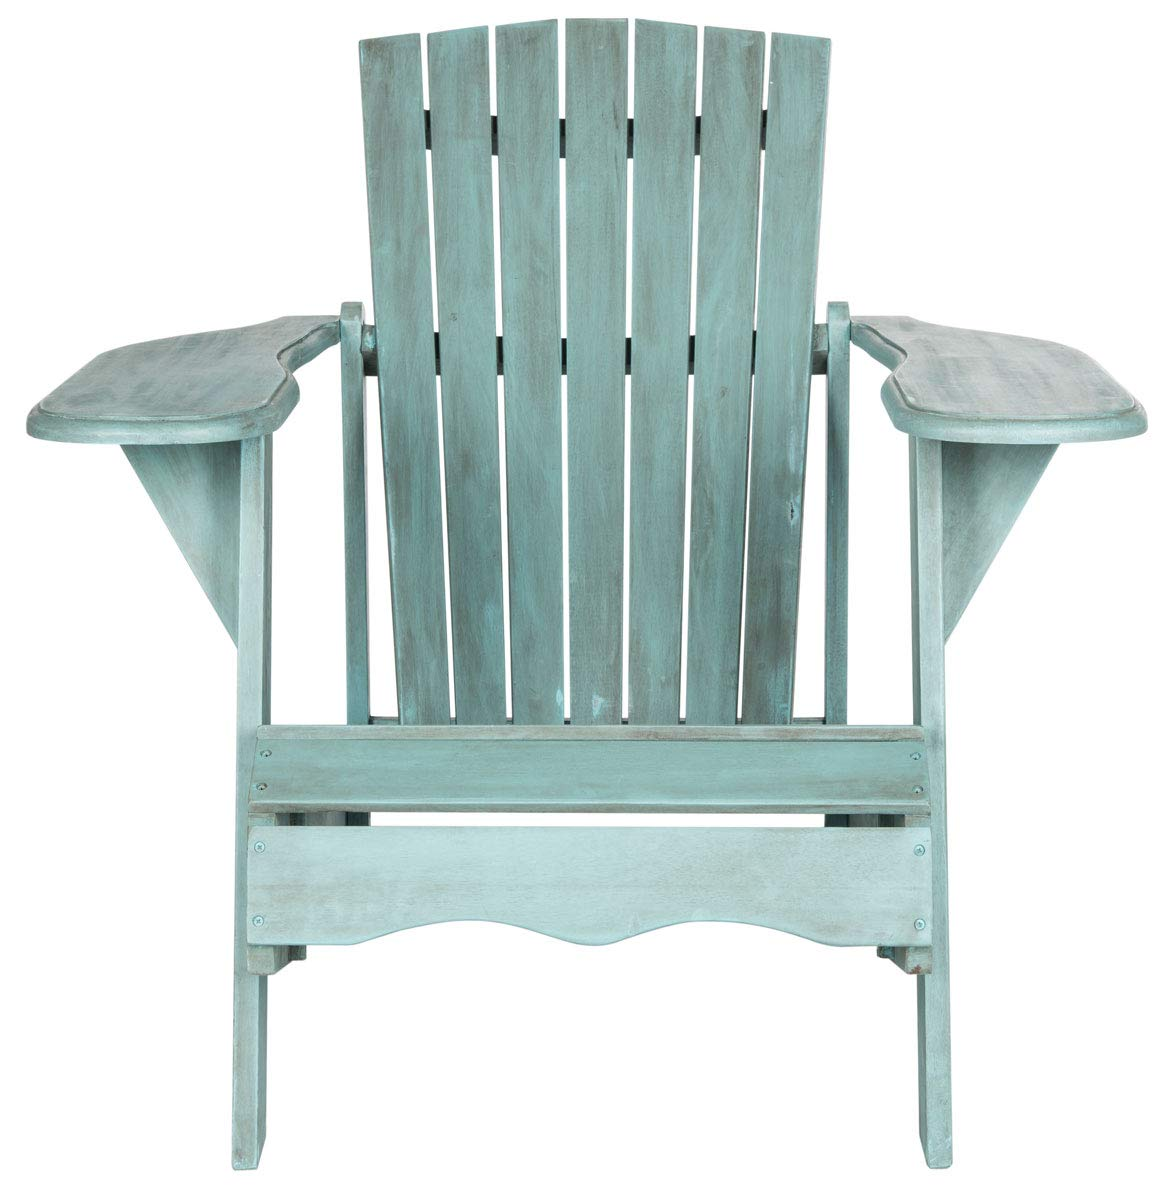 Safavieh Outdoor Collection Mopani Adirondack Chair, Beach House Blue